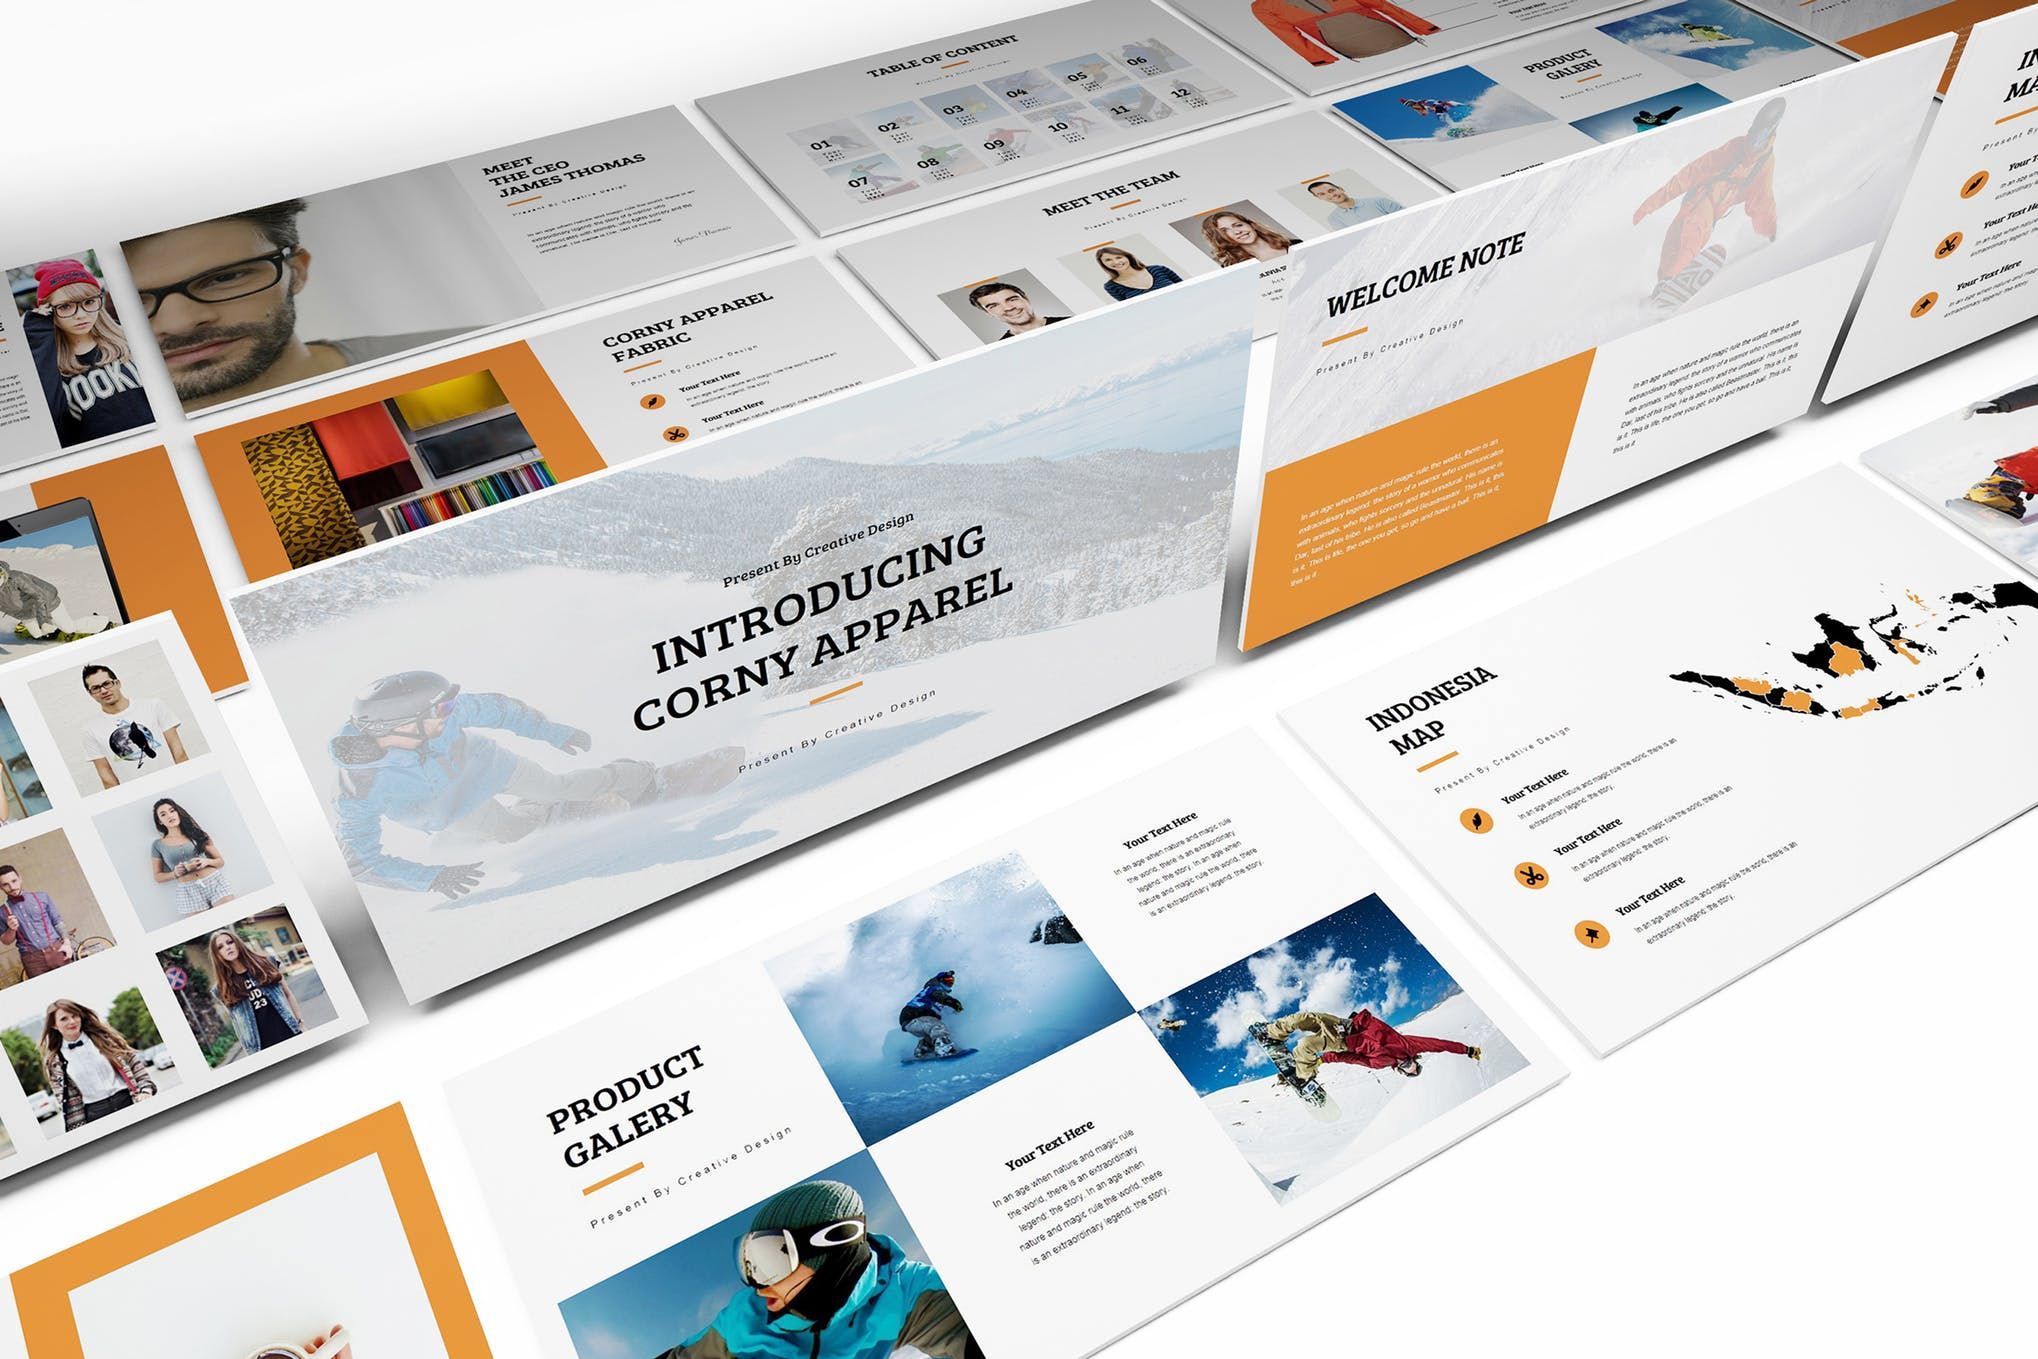 Cover Image For Apparel Product Launching Powerpoint Template